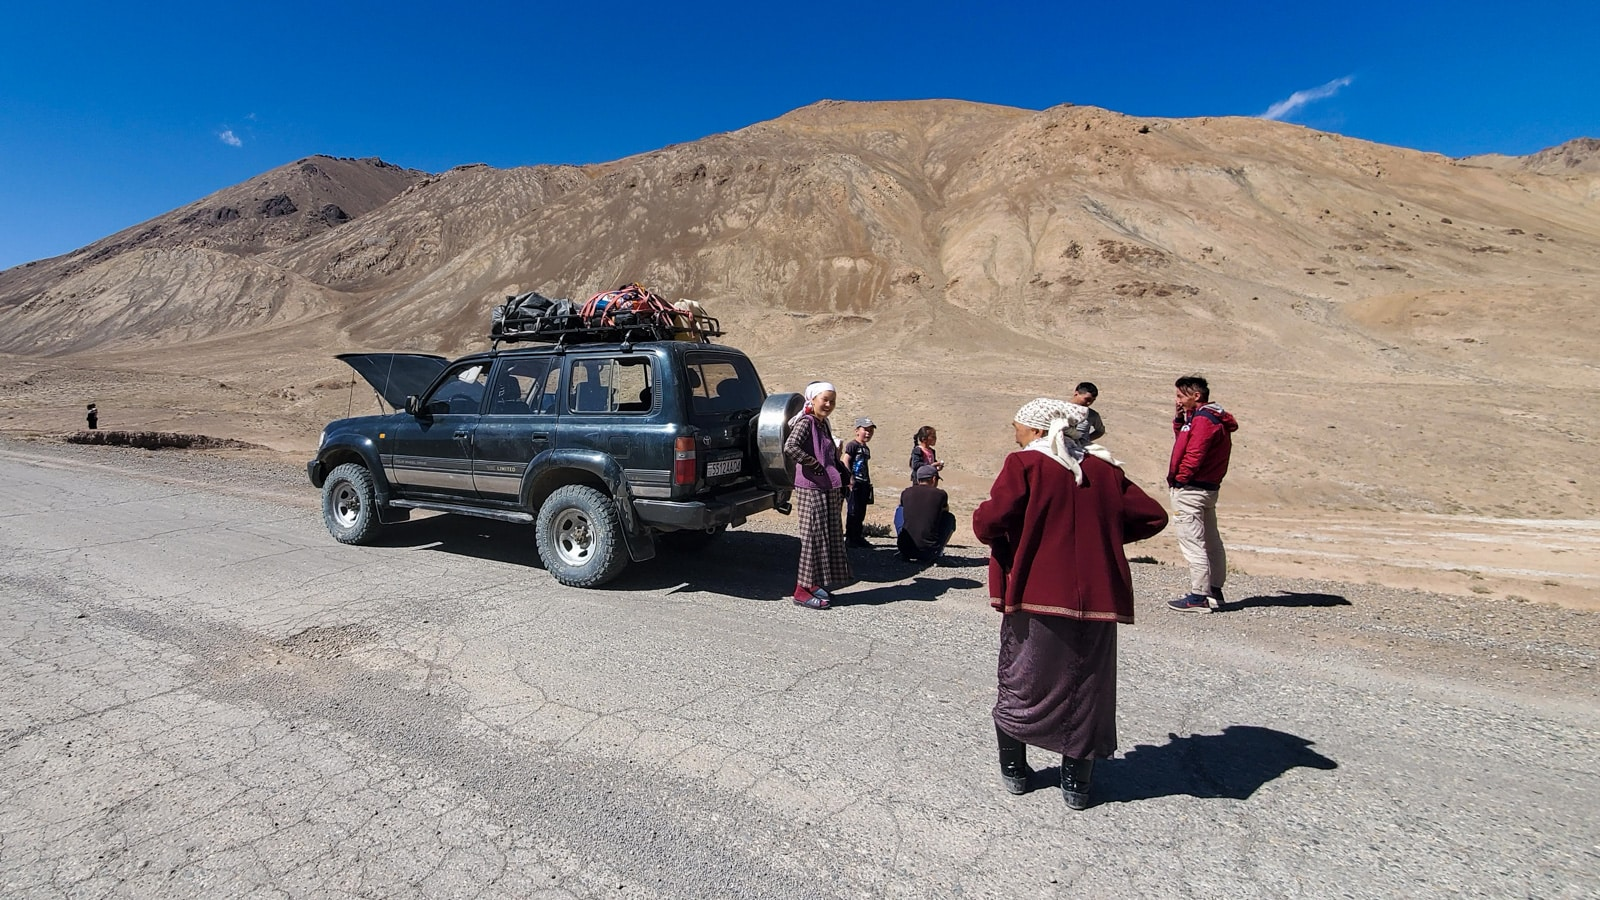 Kyrgyz passengers by a jeep on the Pamir Highway in Tajikistan